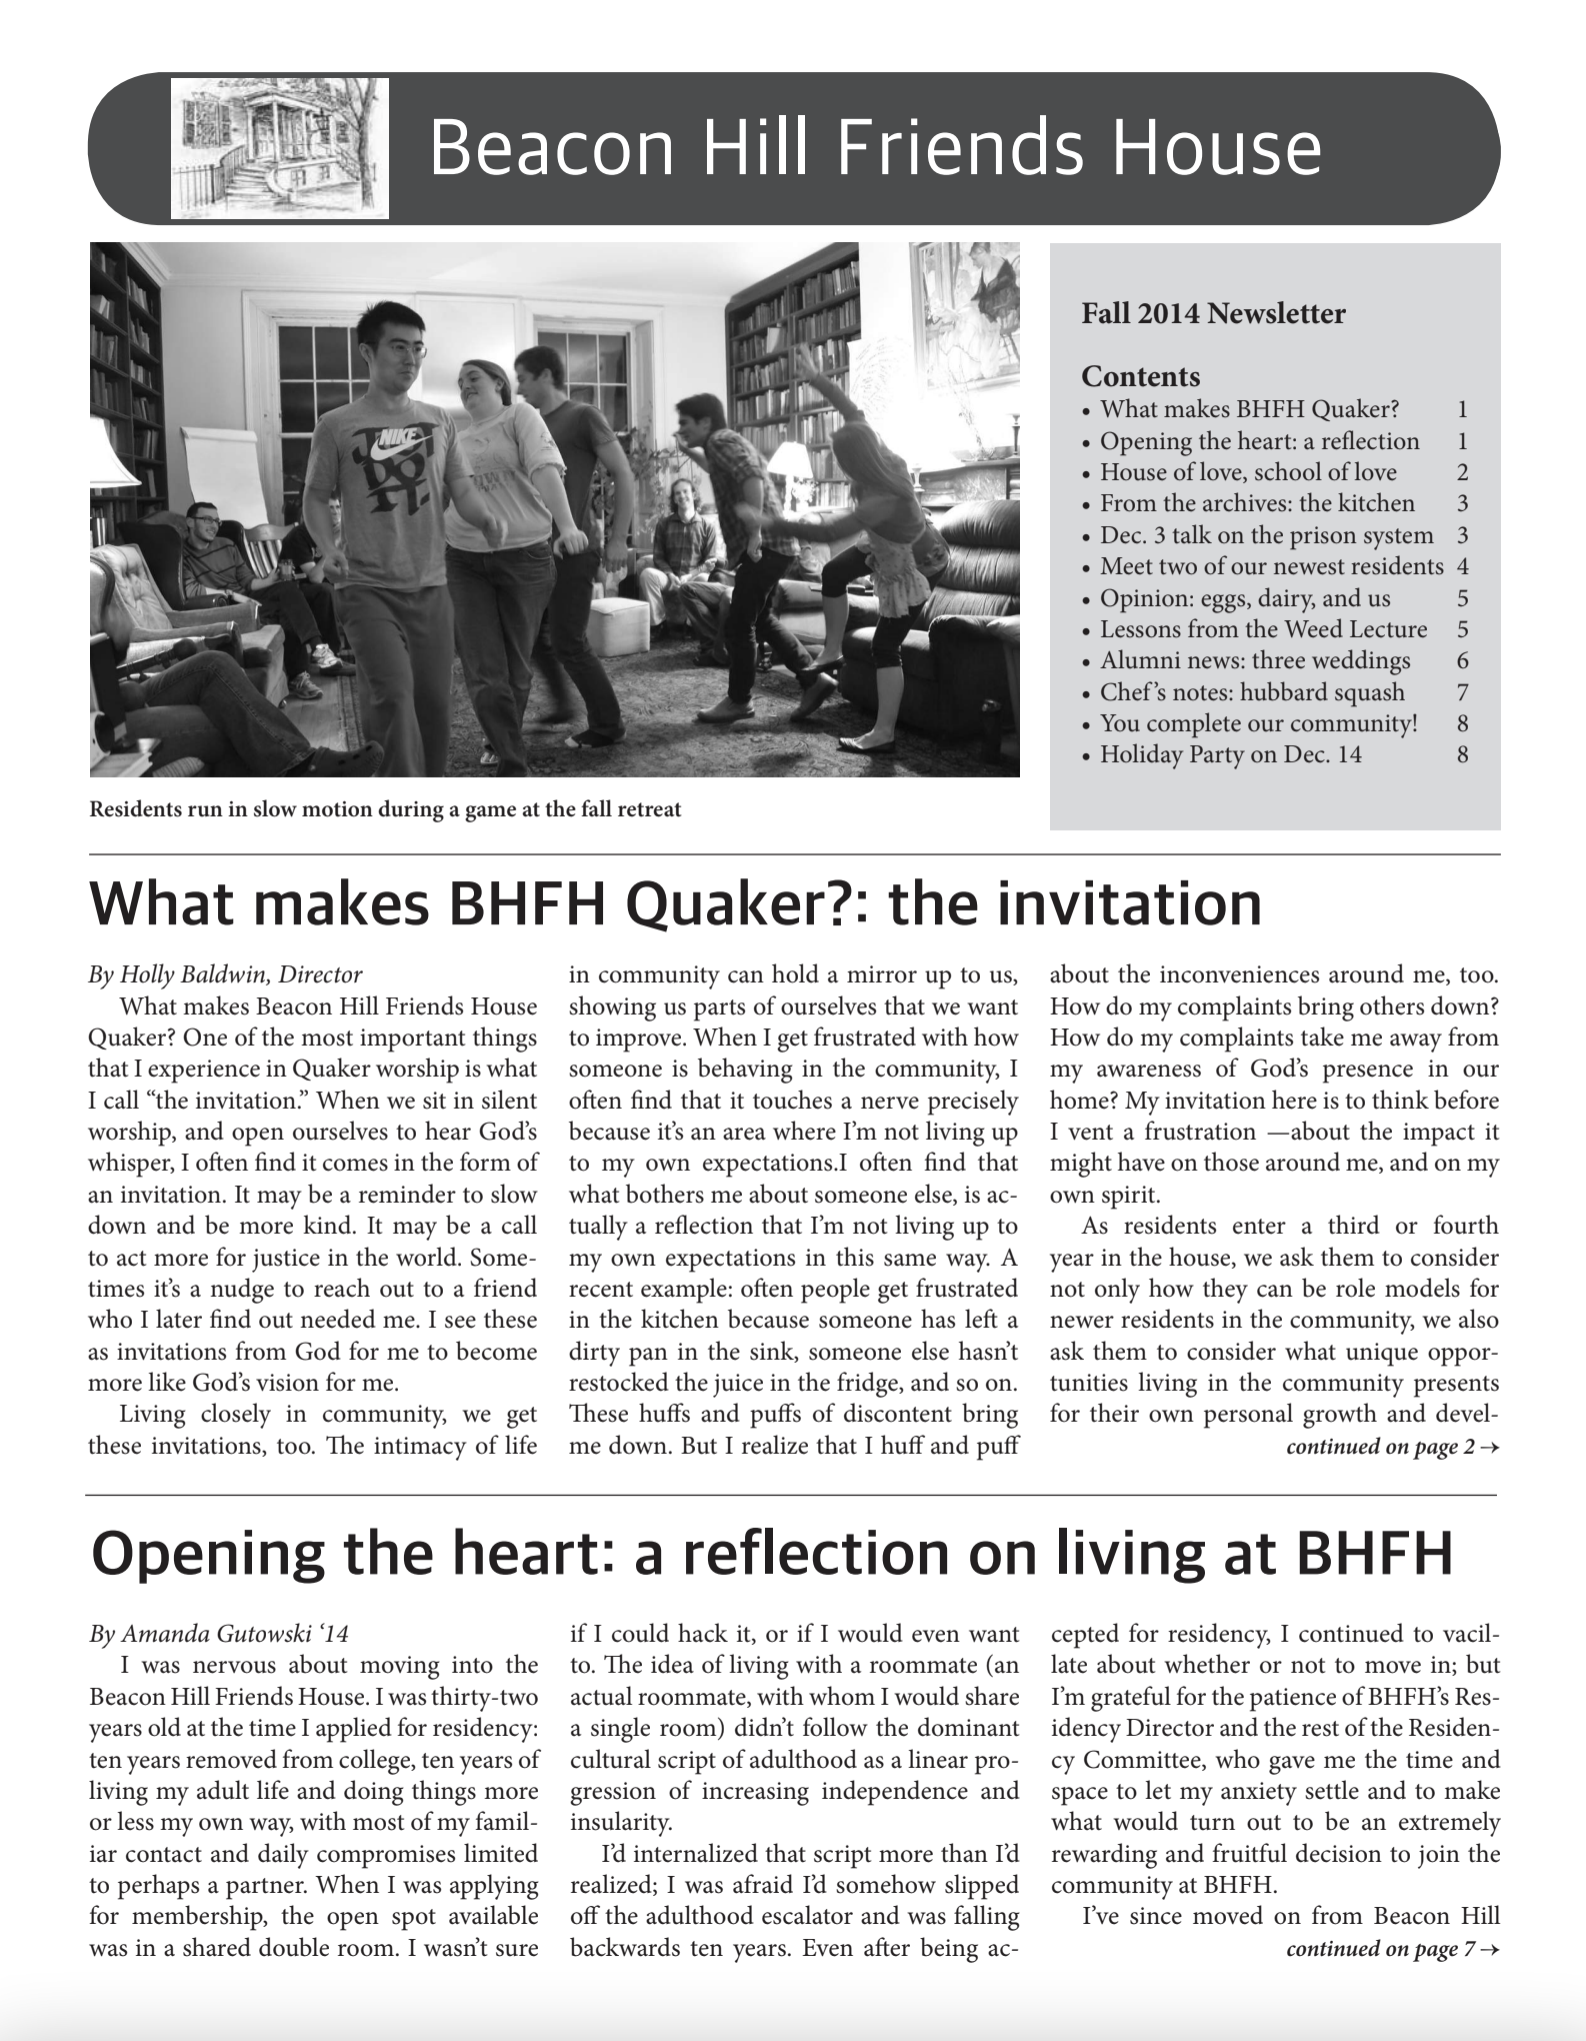 First page of fall/winter 2014 newsletter